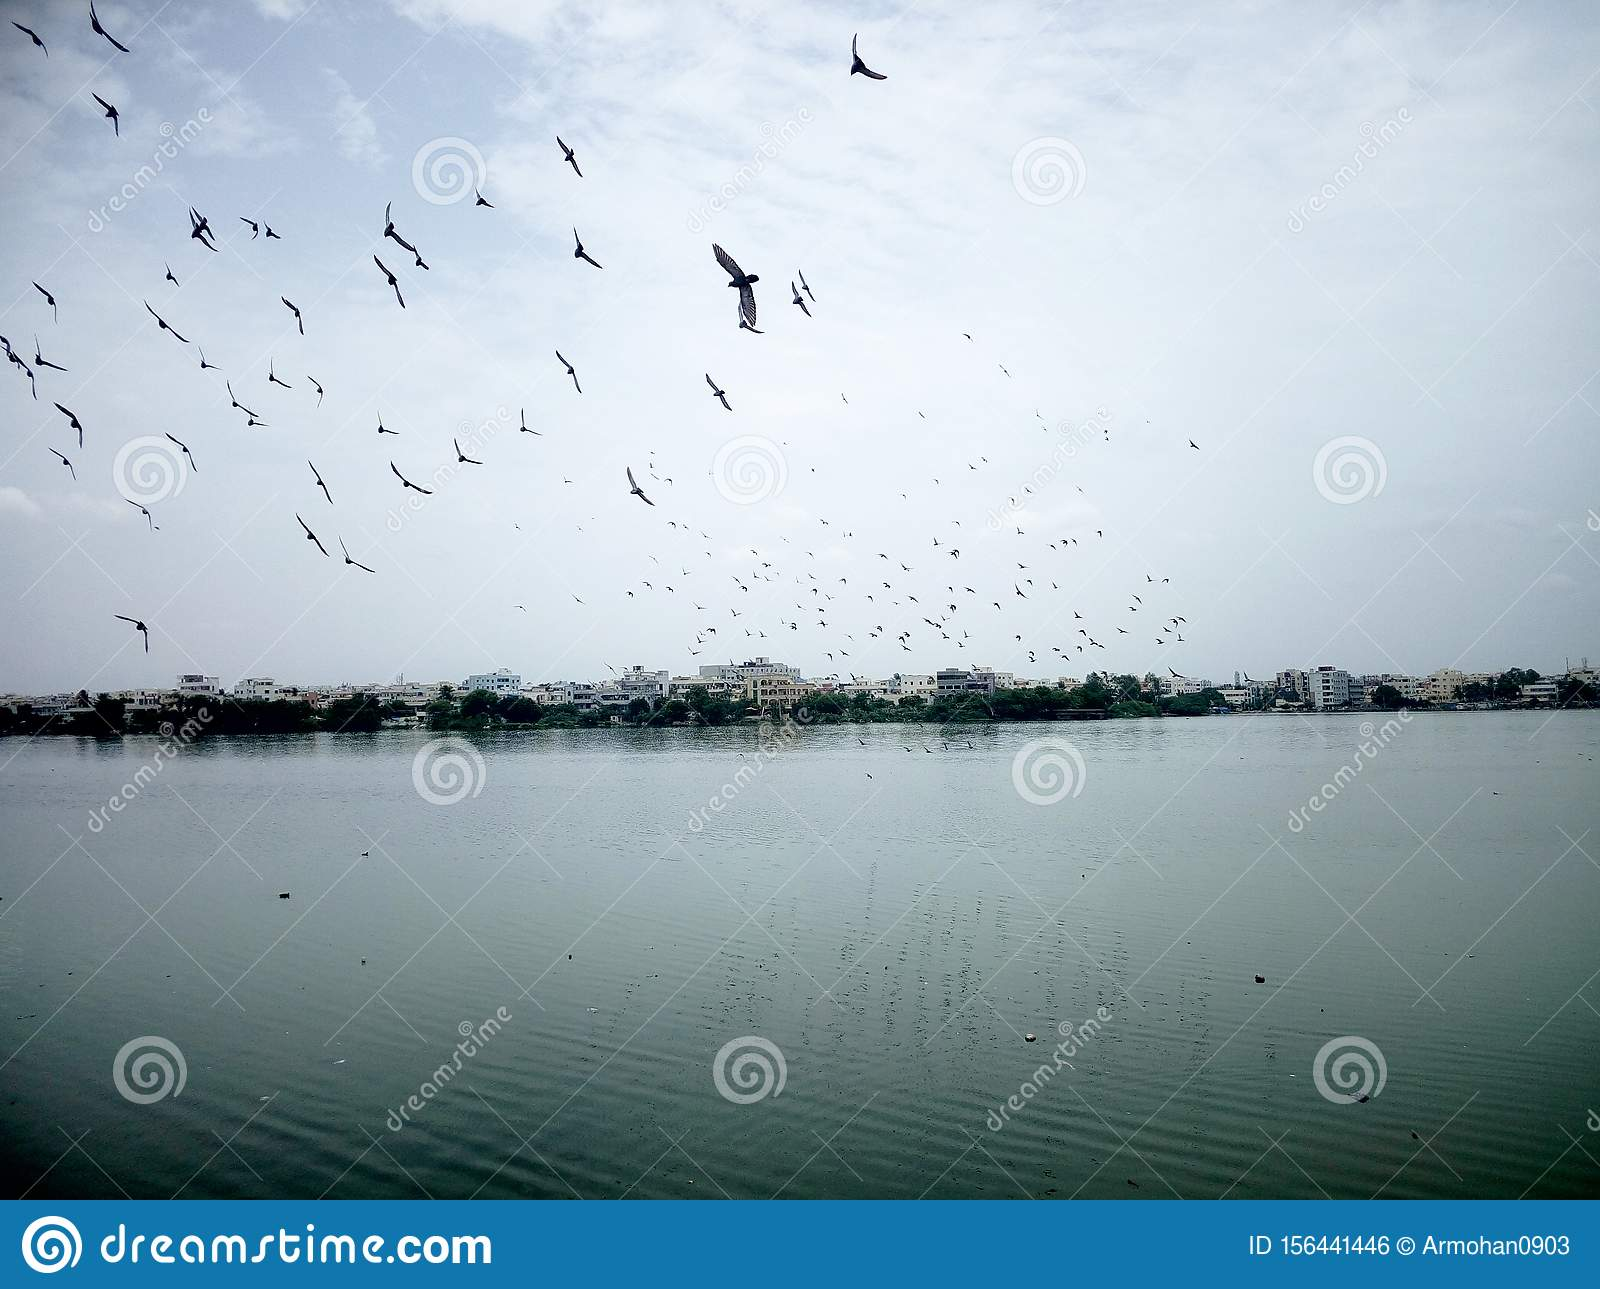 Flocking birds over a Lake.